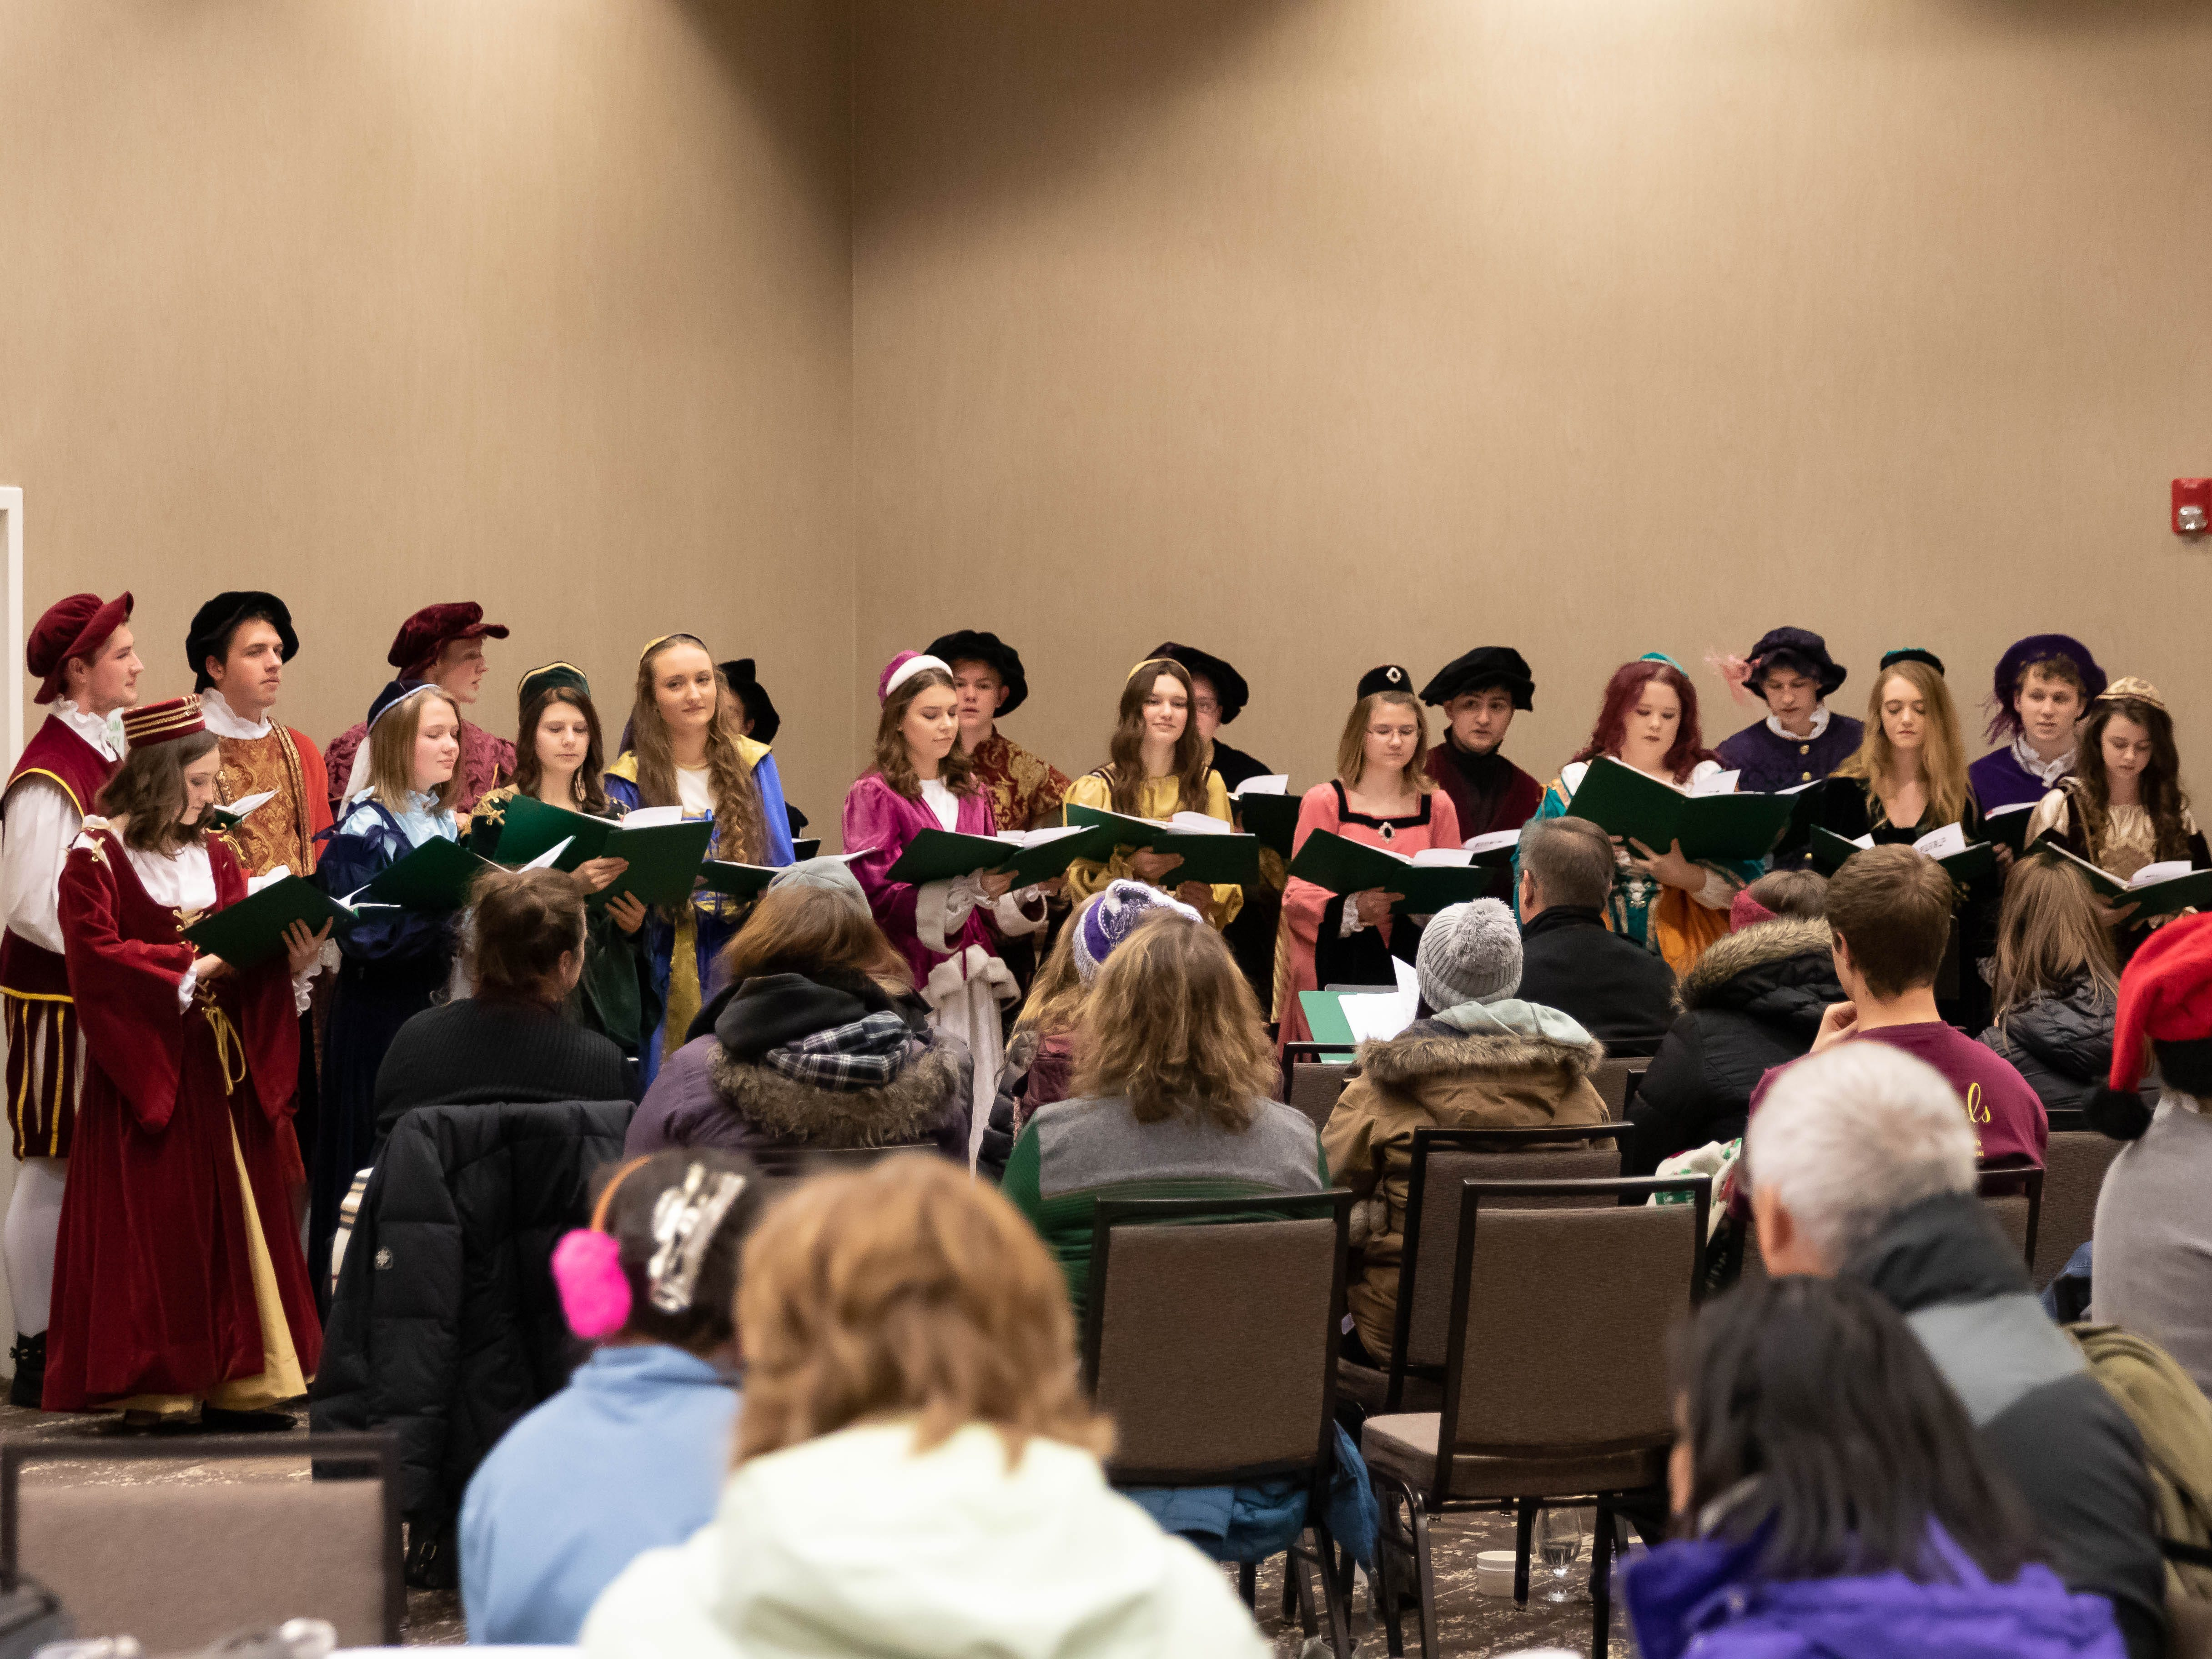 Students perform at the Holiday Inn after the Main Street Holiday Parade on Thursday, Nov. 15, 2018, in downtown Marshfield.